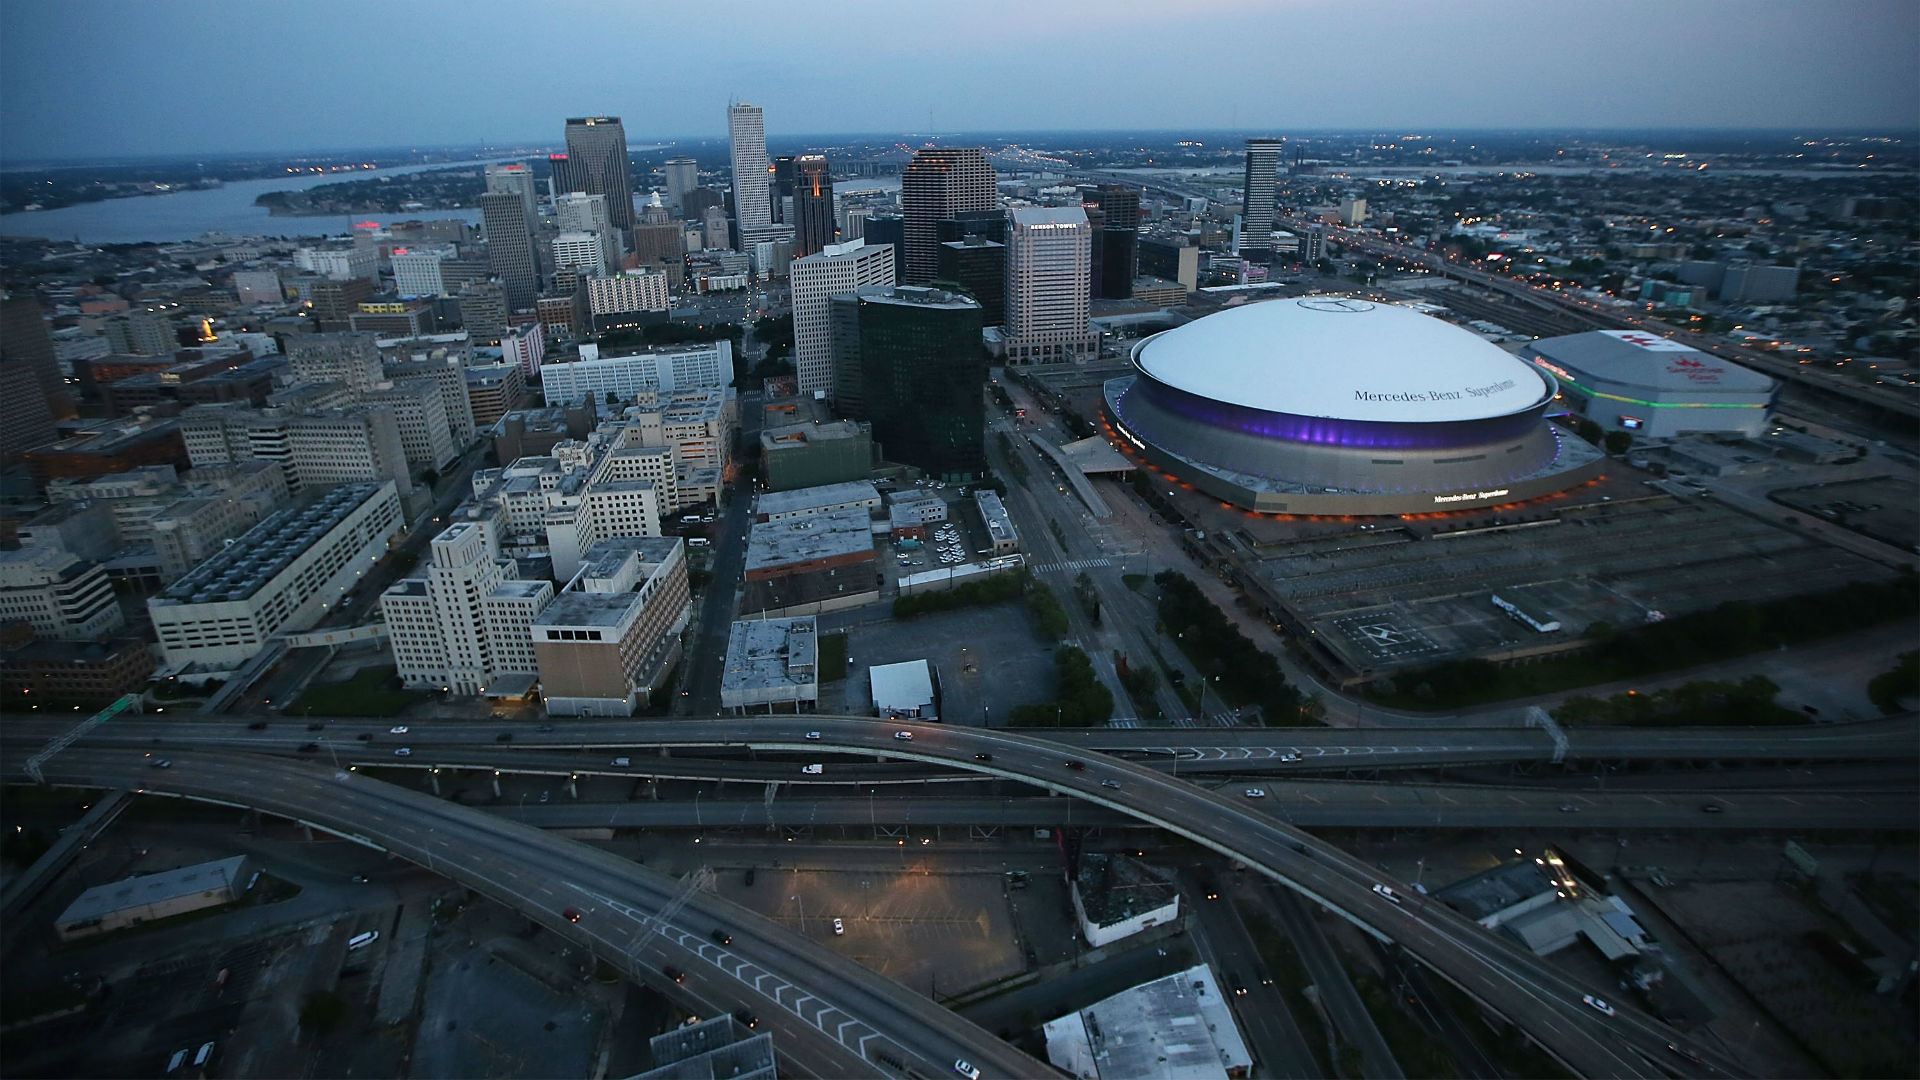 Superdome officials offer up venue for houston lsu byu game for Will call mercedes benz stadium